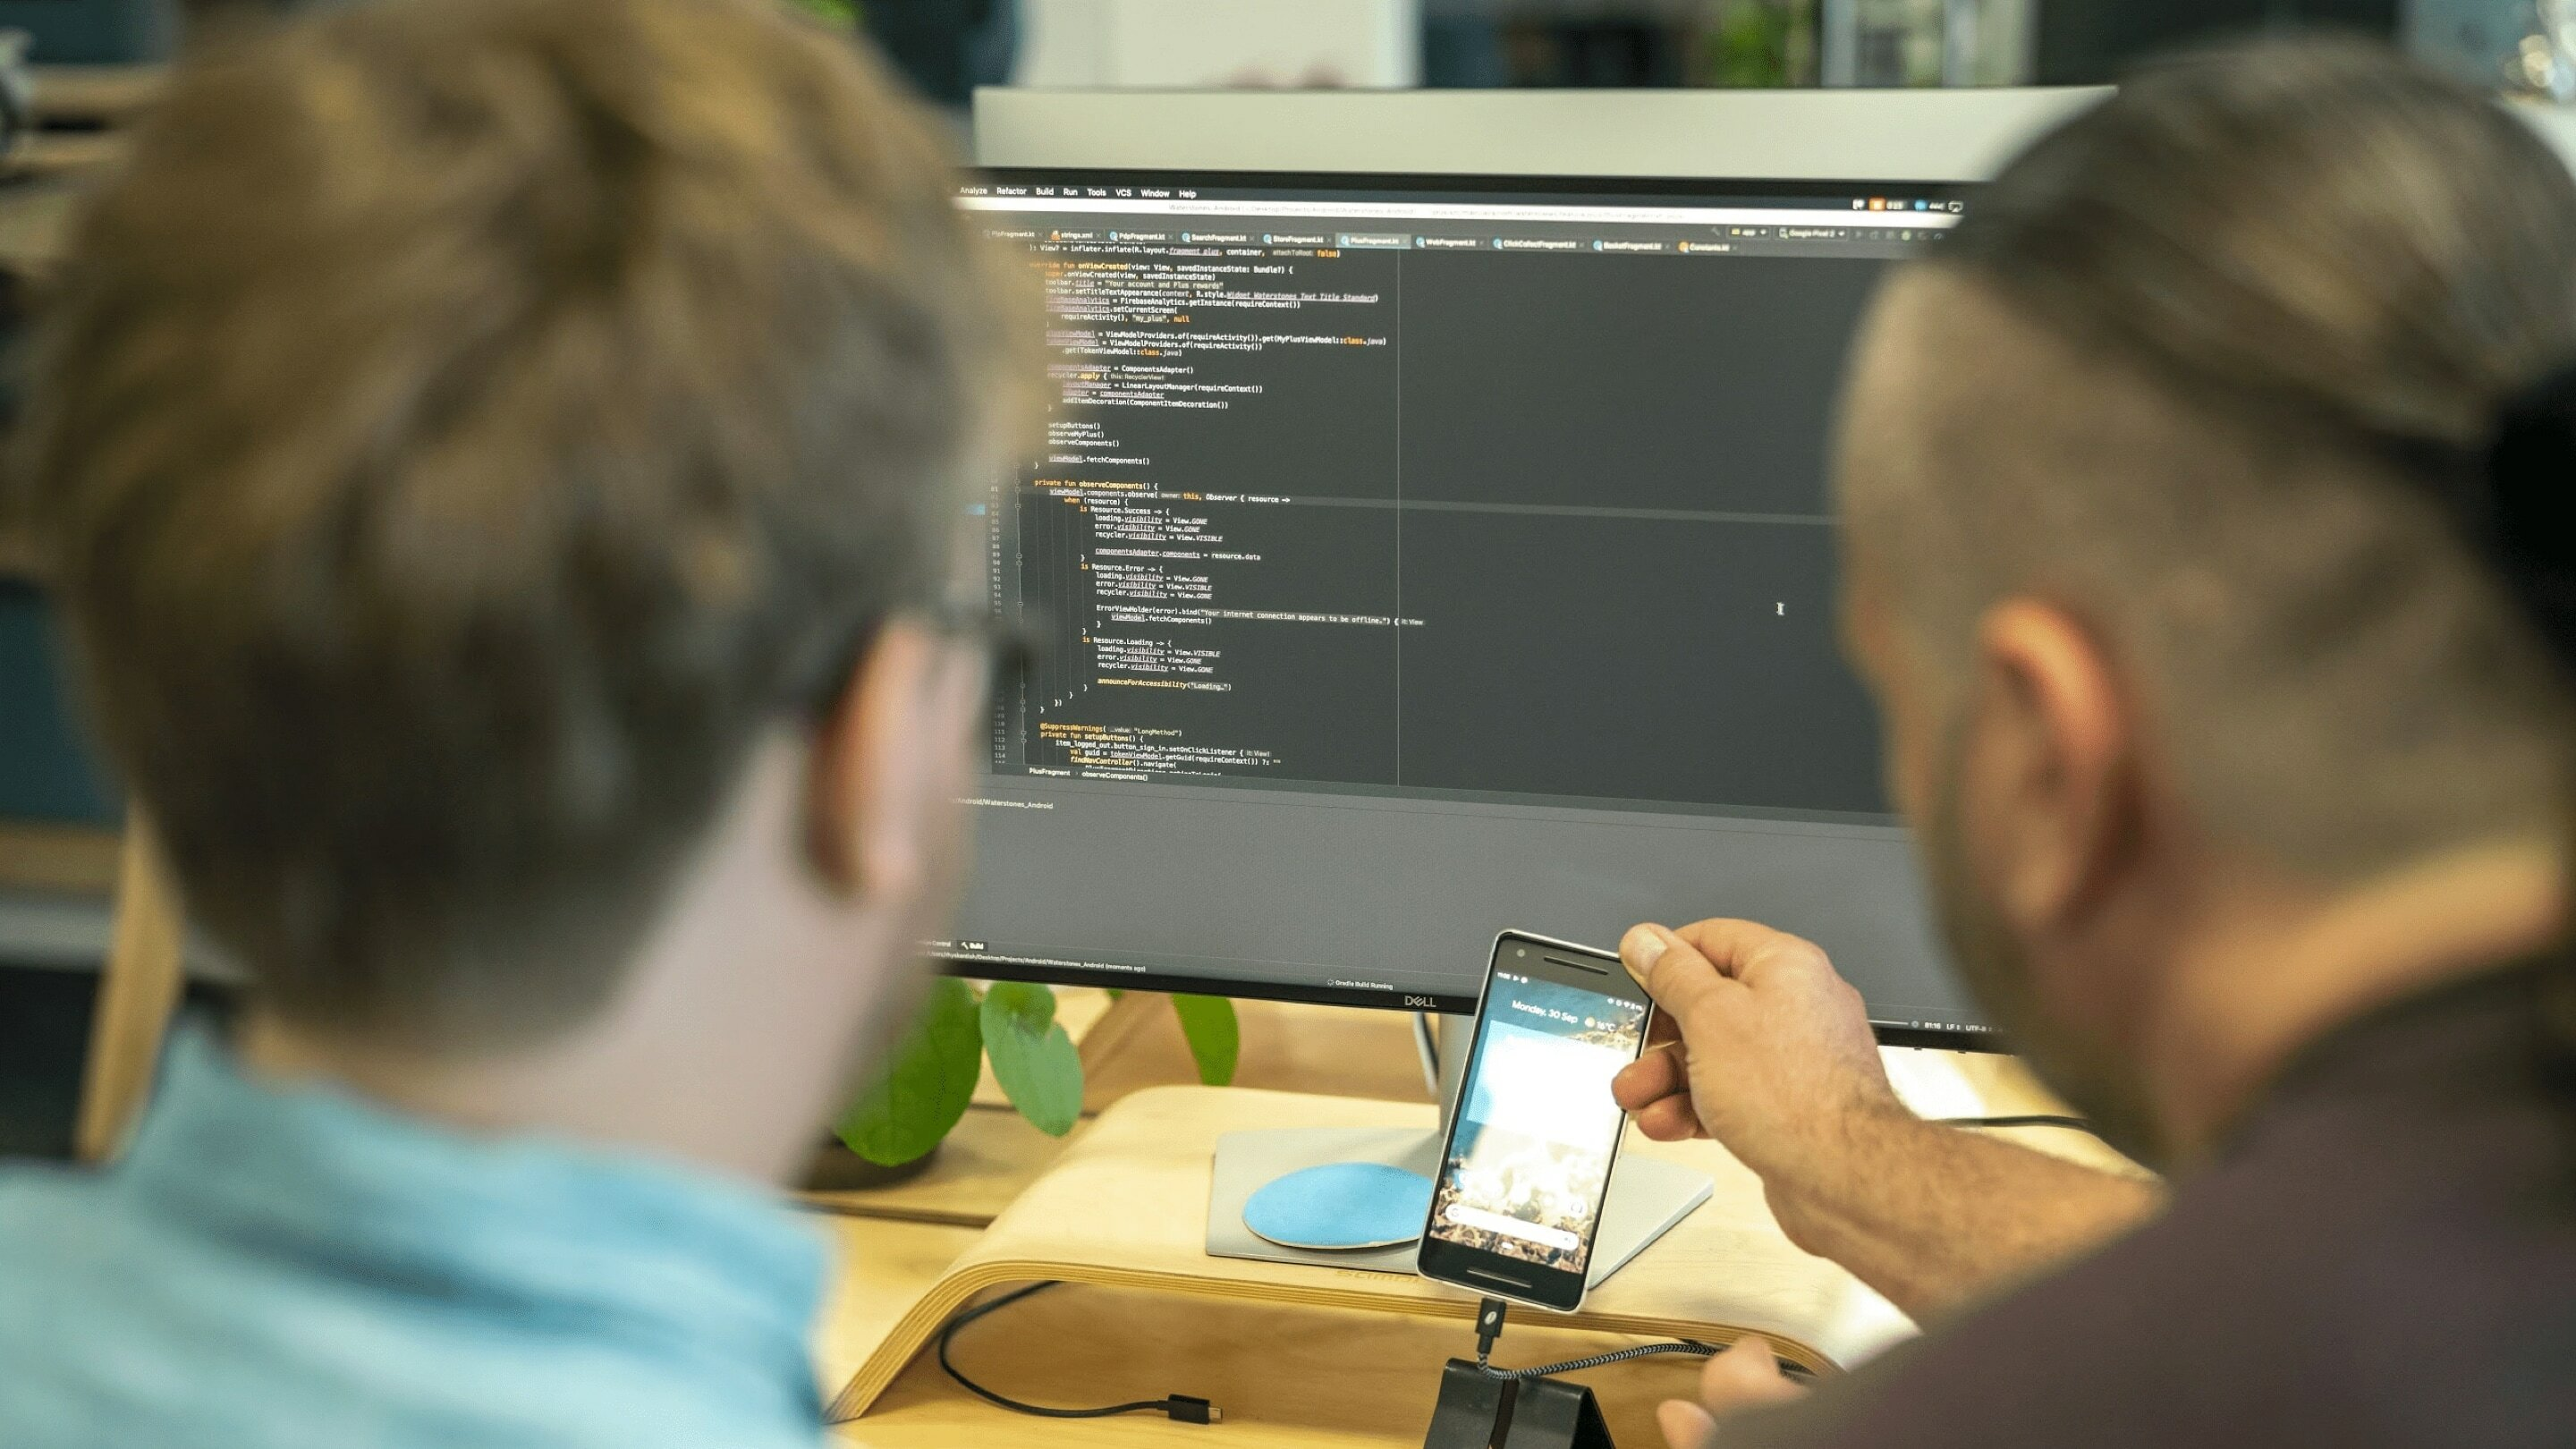 Steve and Rhys working on an app